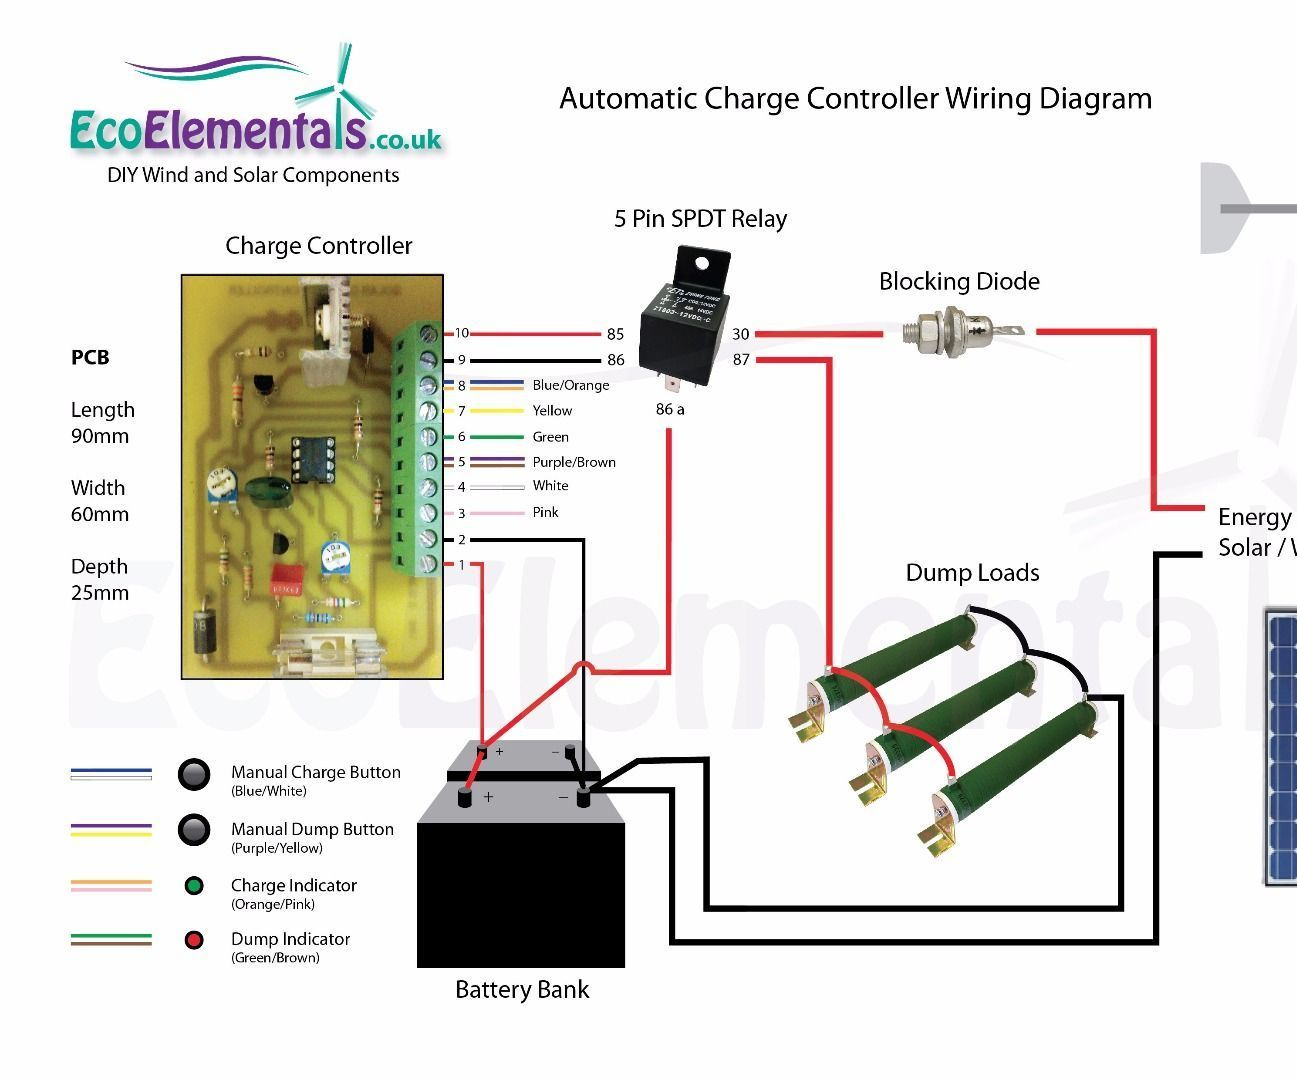 charge controller wiring diagram for diy wind turbine or solar panels [ 1297 x 1080 Pixel ]